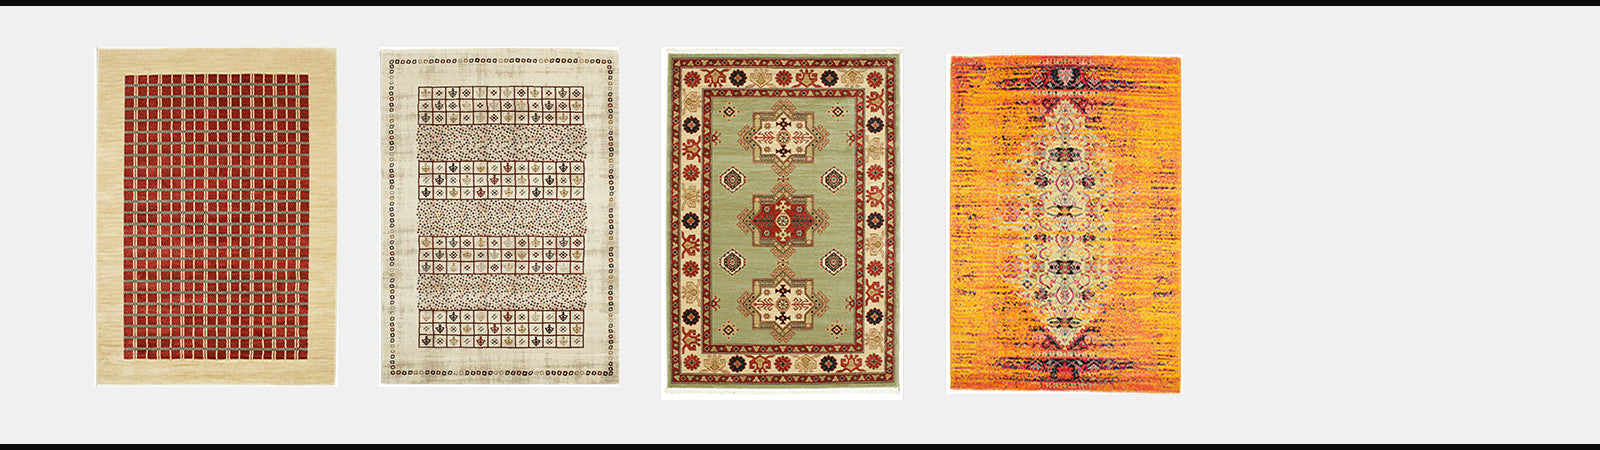 Buy rugs by colour red brown pink orange blue ivory beige green yellow multicolour